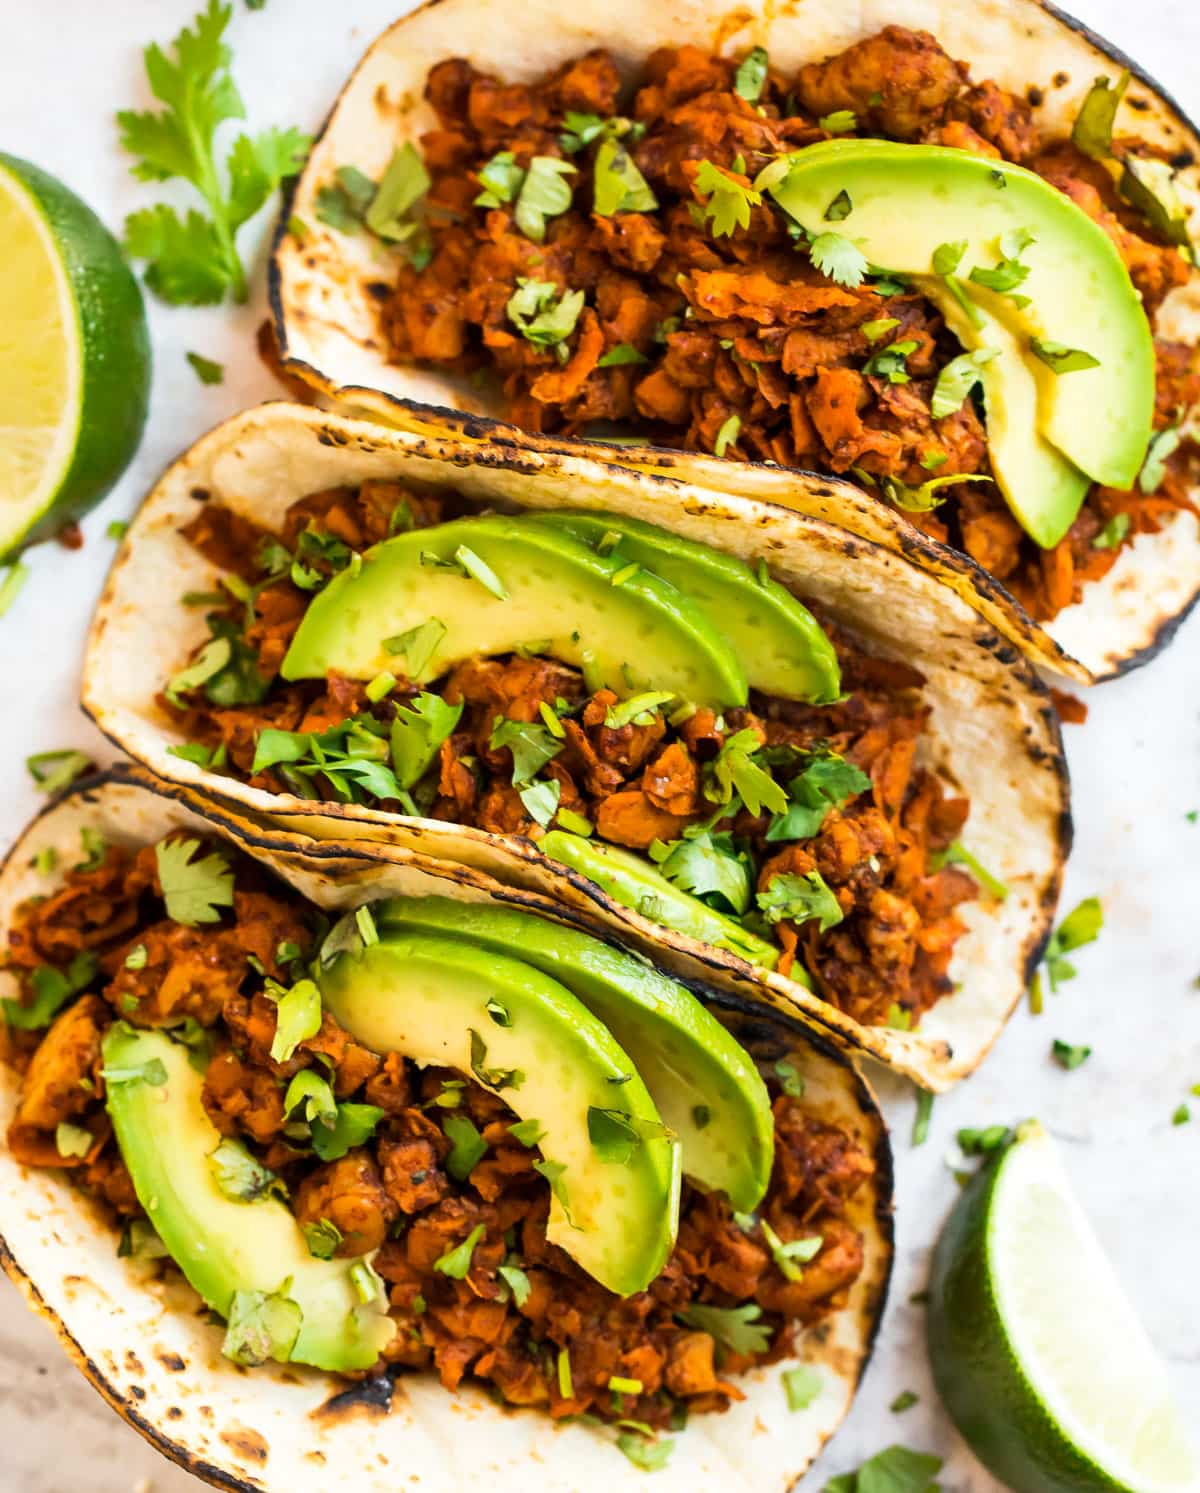 Tempeh tacos topped with avocado slices